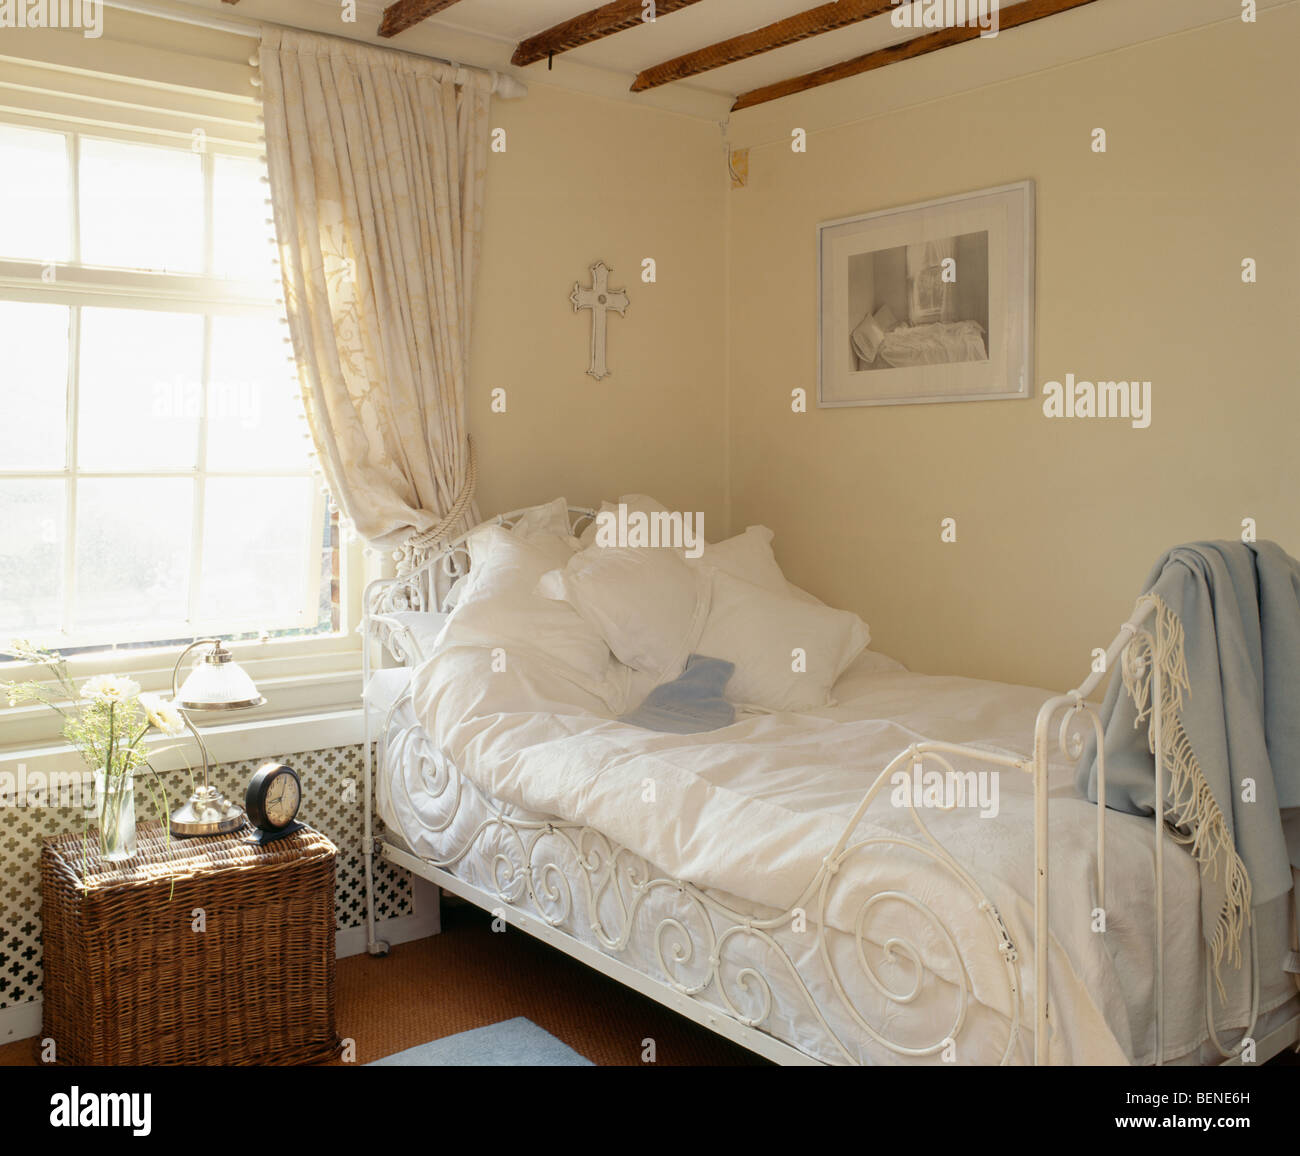 White Pillows And Bedlinen On Ornate White Cast Iron Single Bed In